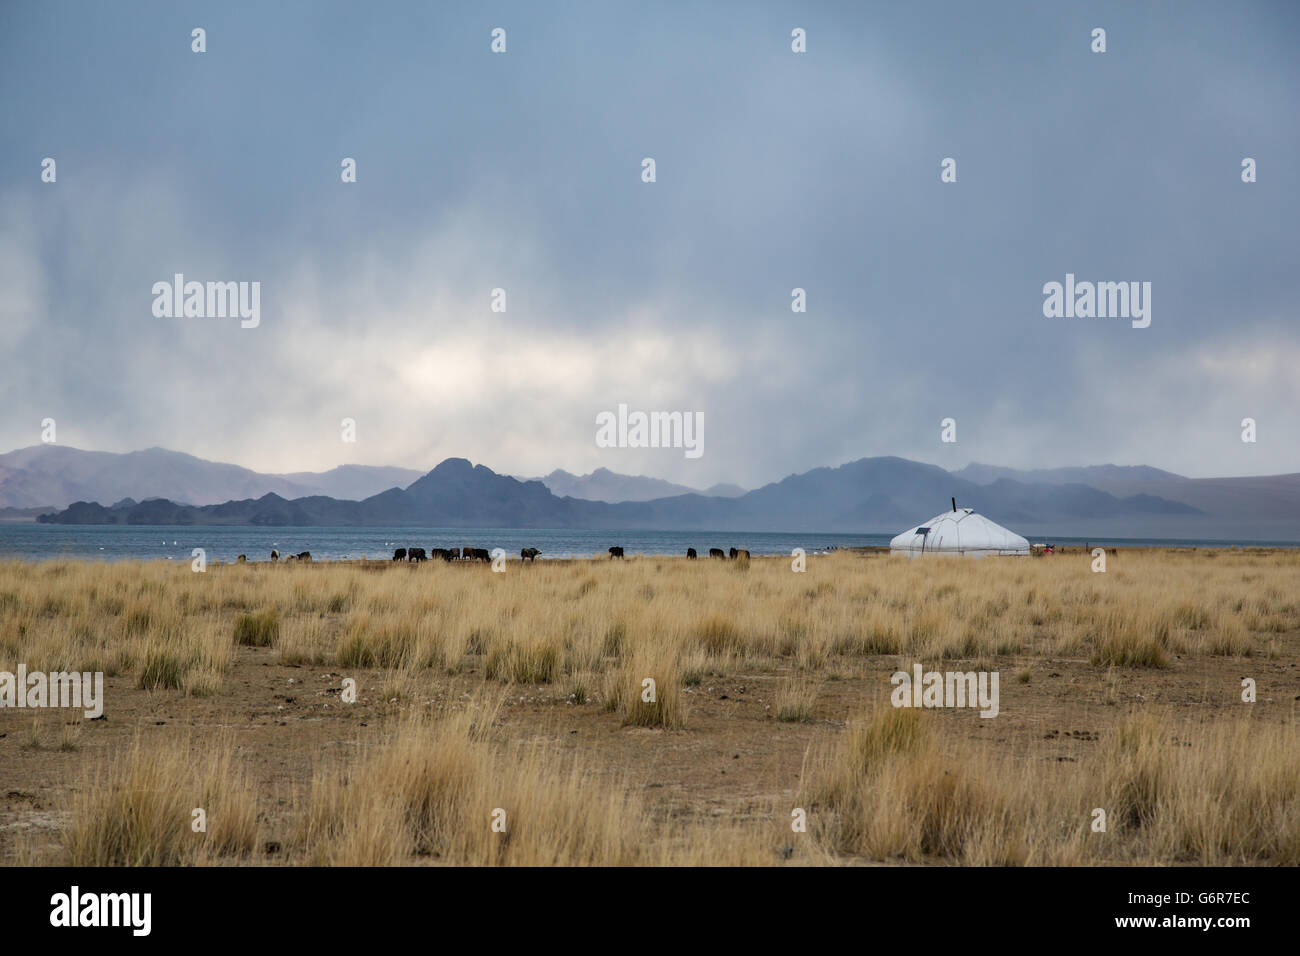 a yurt in a landscape of western mongilia with mountains at the backdrop - Stock Image